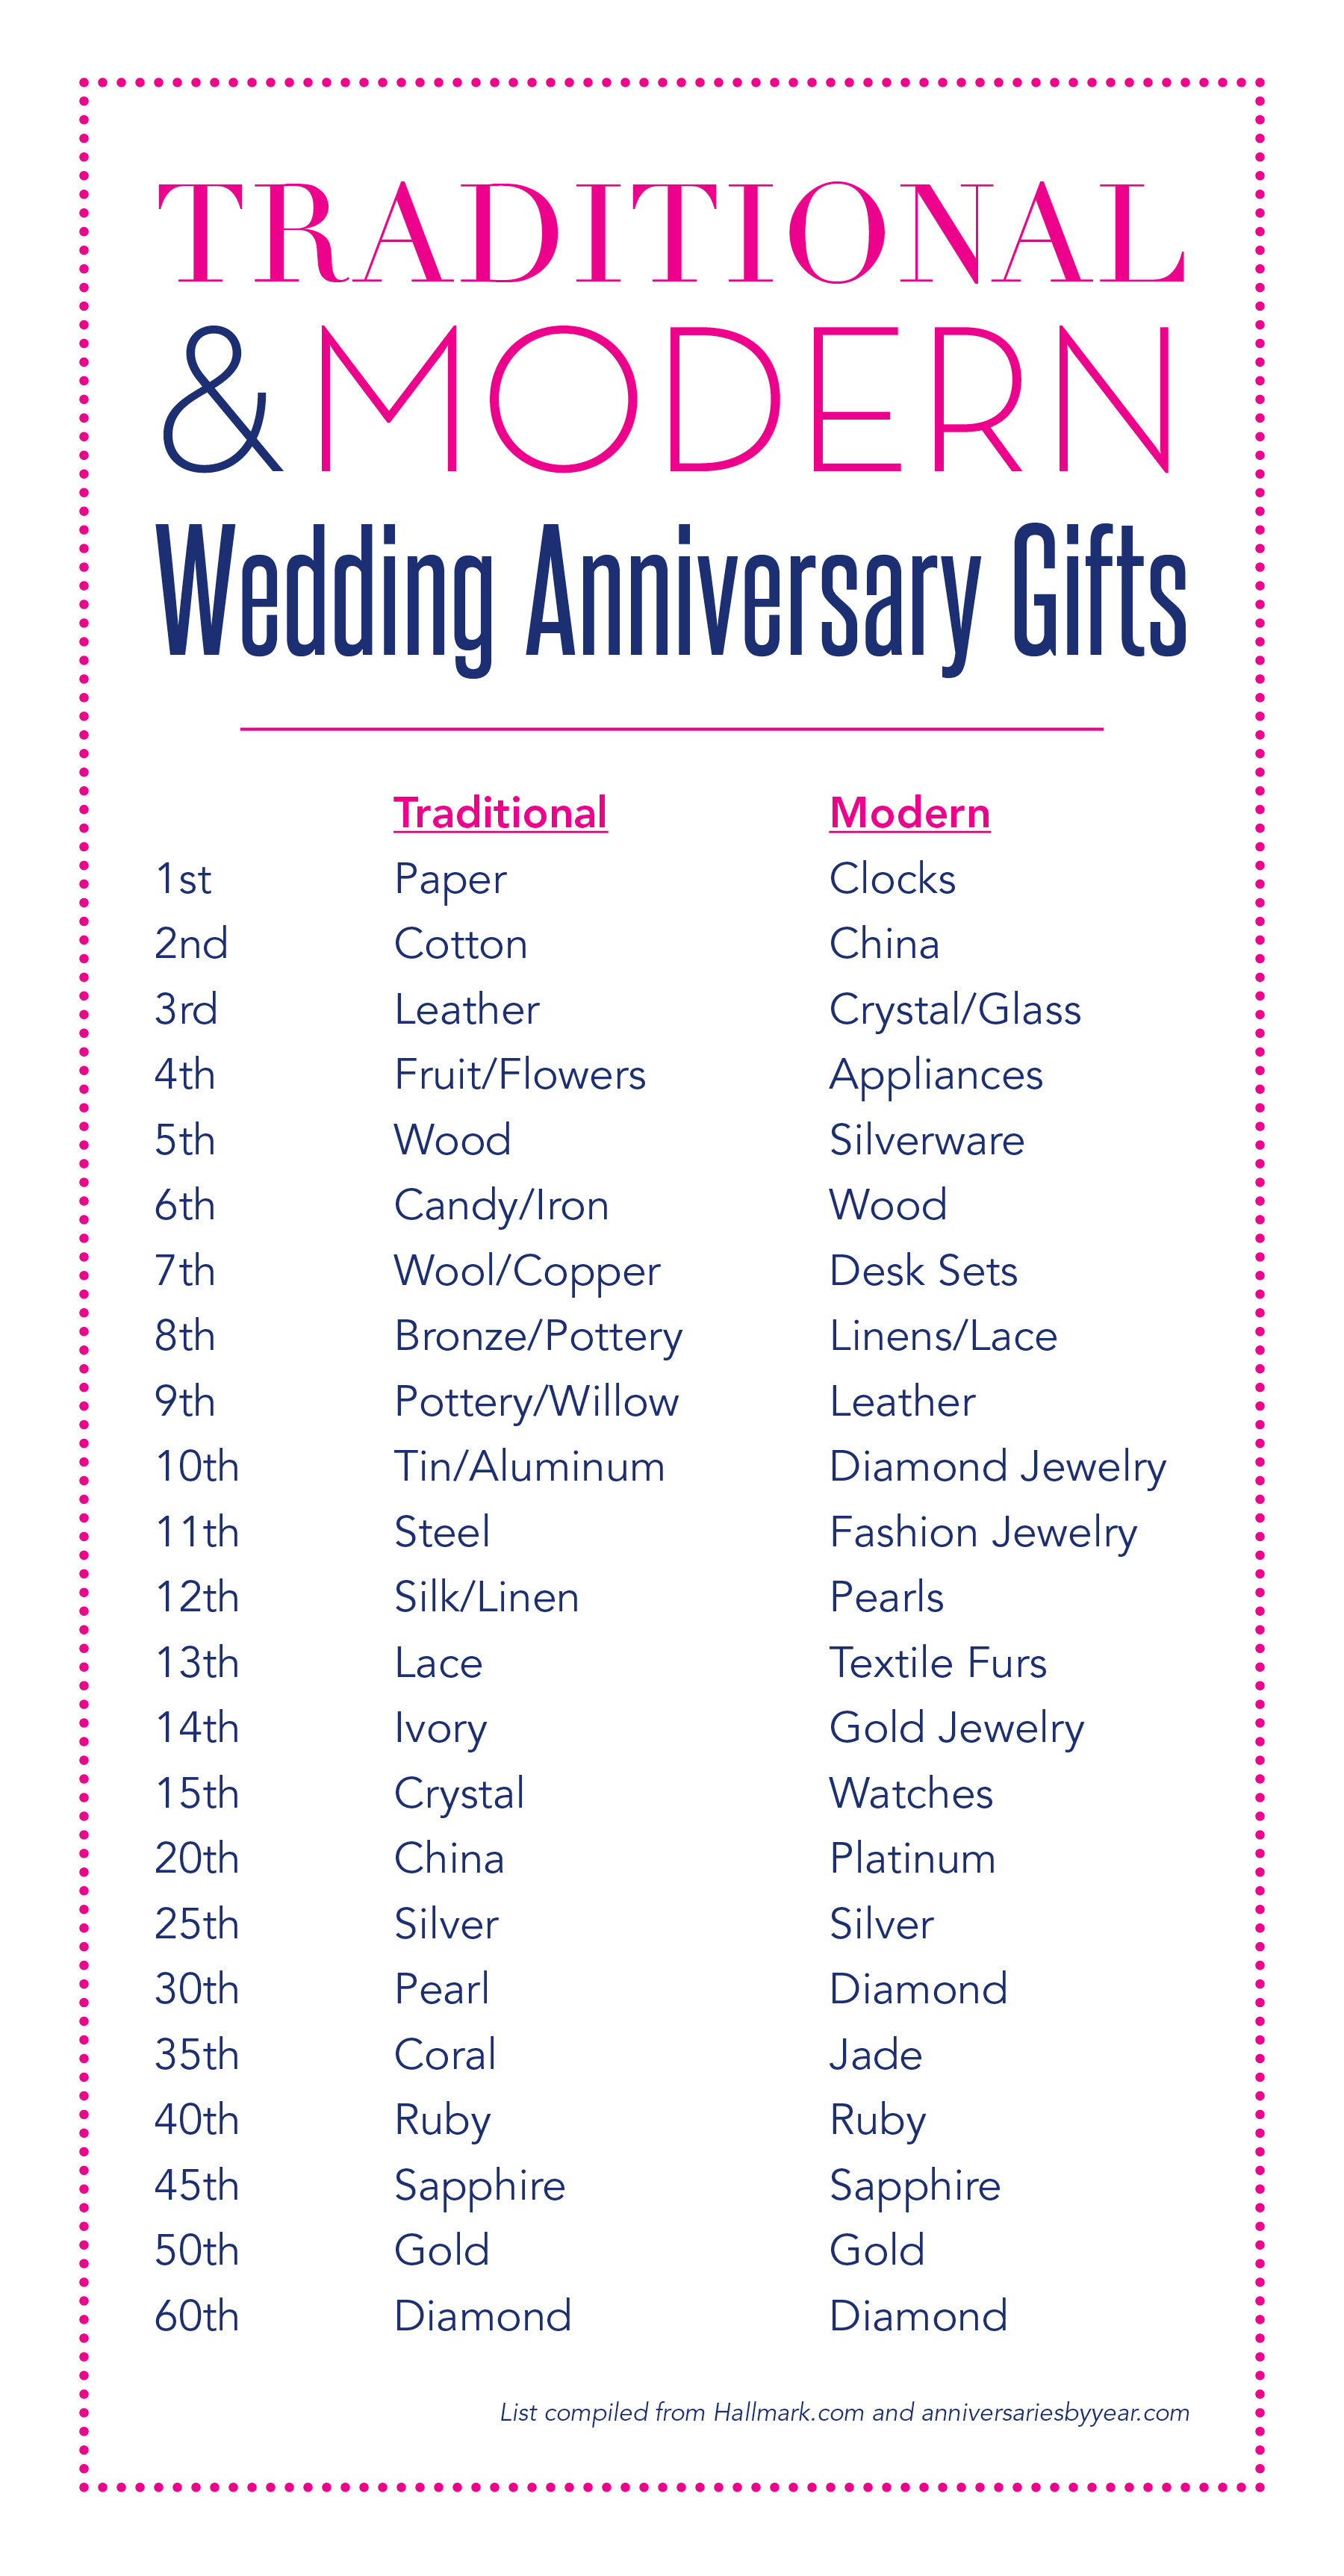 Best Anniversary Gift For Wedding: Wedding Anniversary Gifts